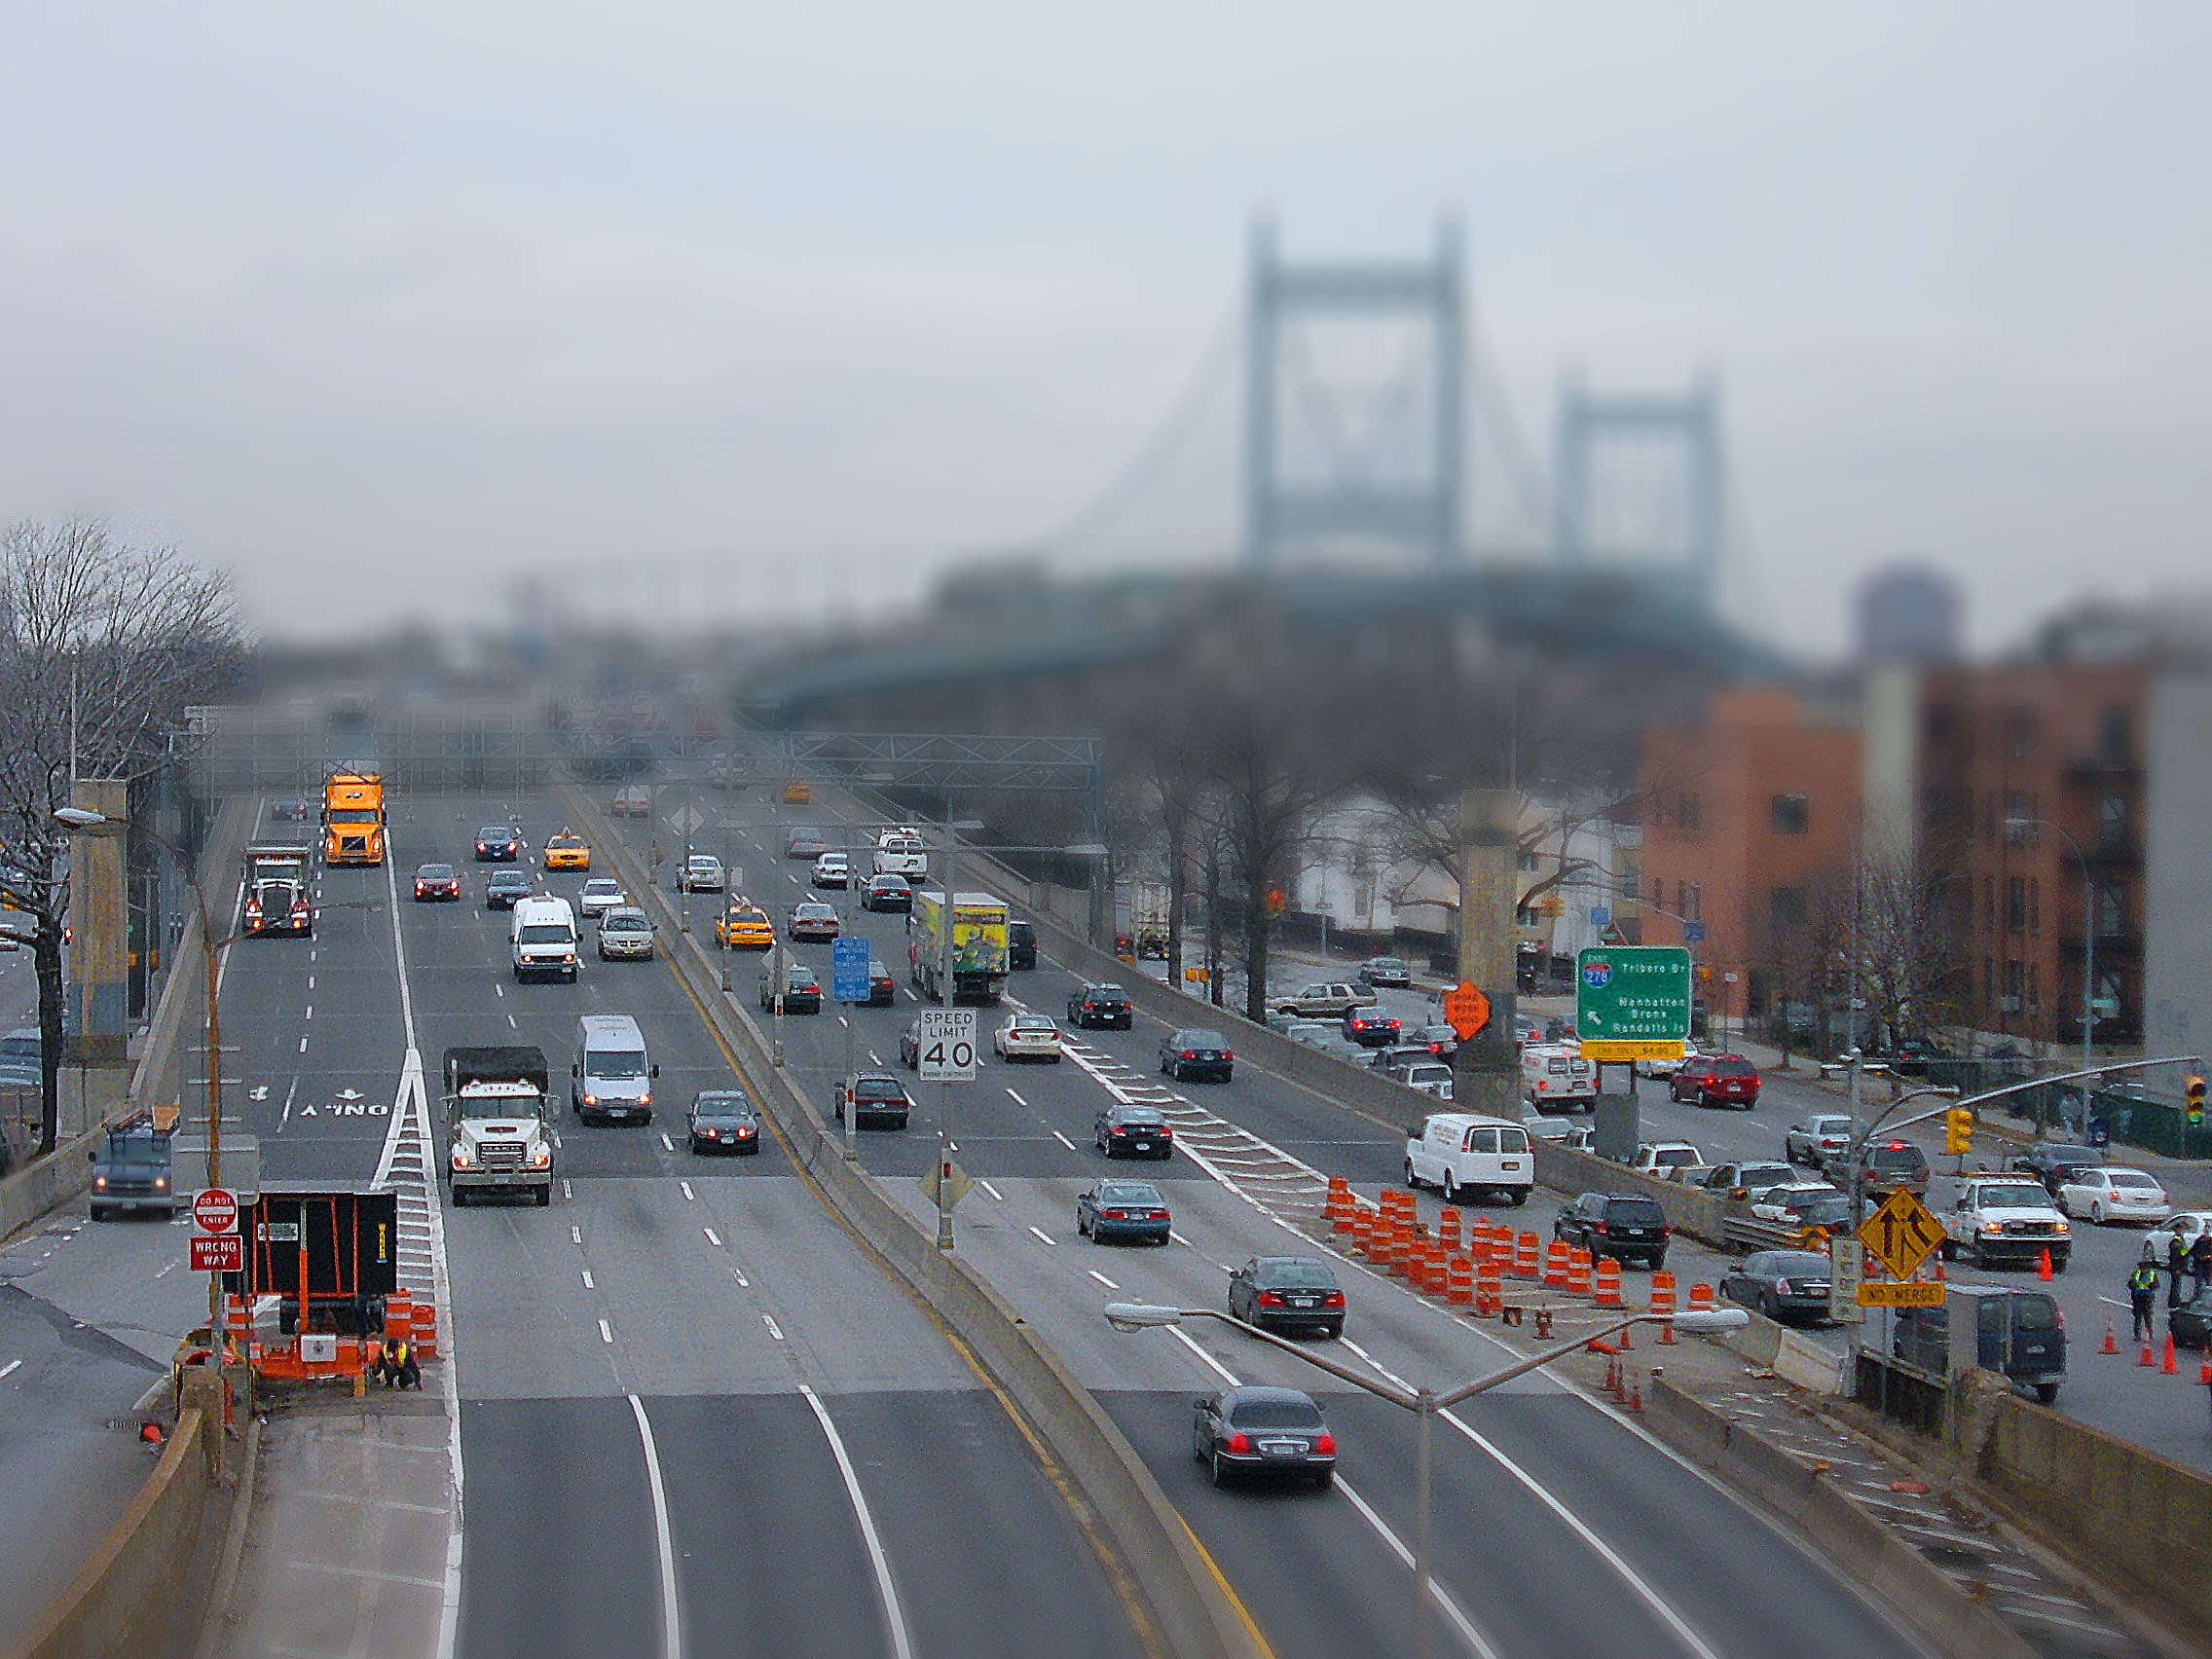 Tiltshift to work in 2007 by tha1ucantget2